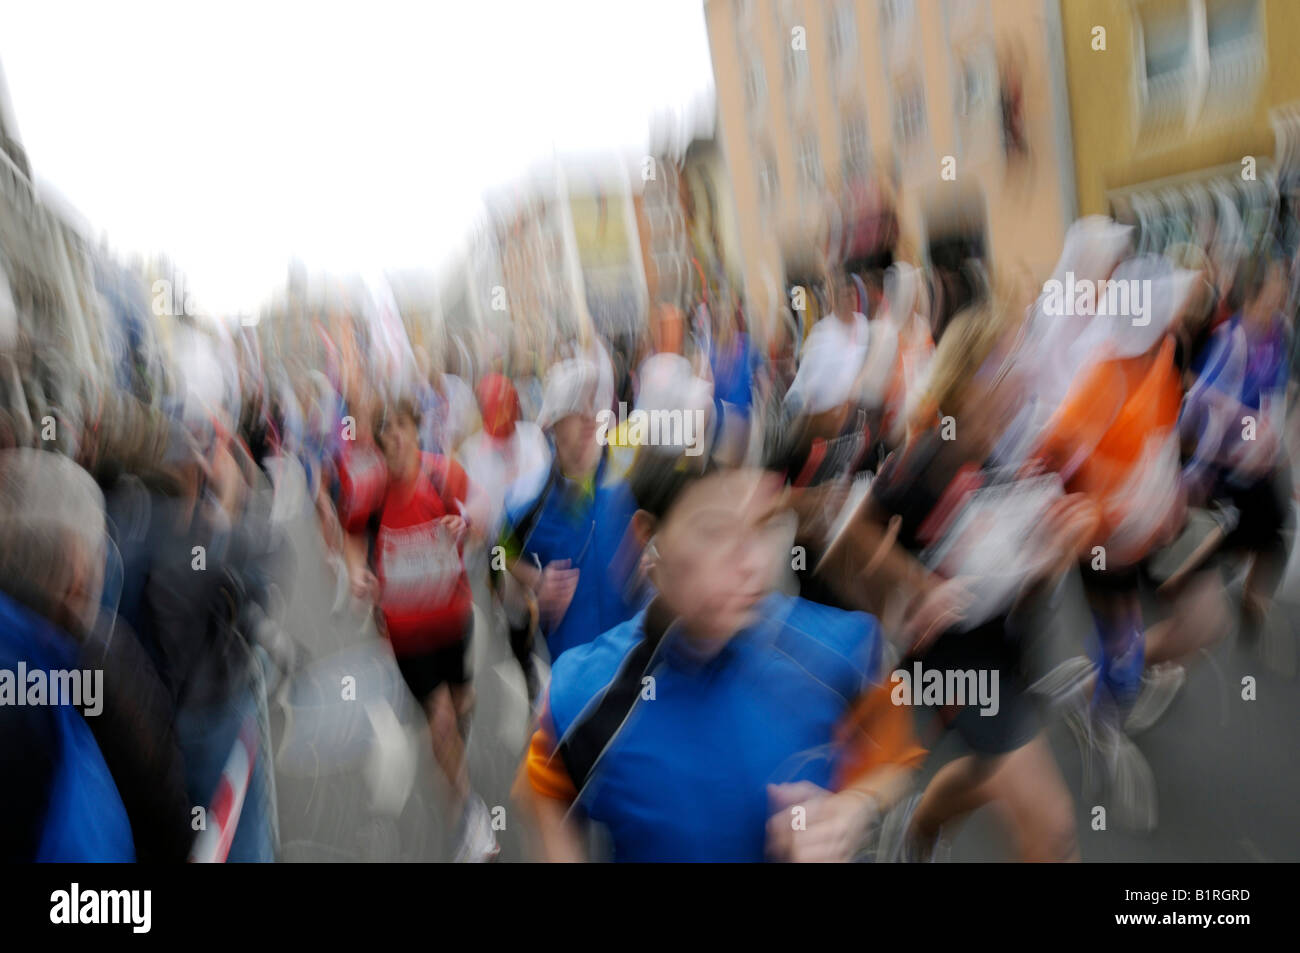 Bonn Marathon in the city centre, spectators on the side of the road, Bonn, North Rhine-Westphalia, Germany, Europe - Stock Image